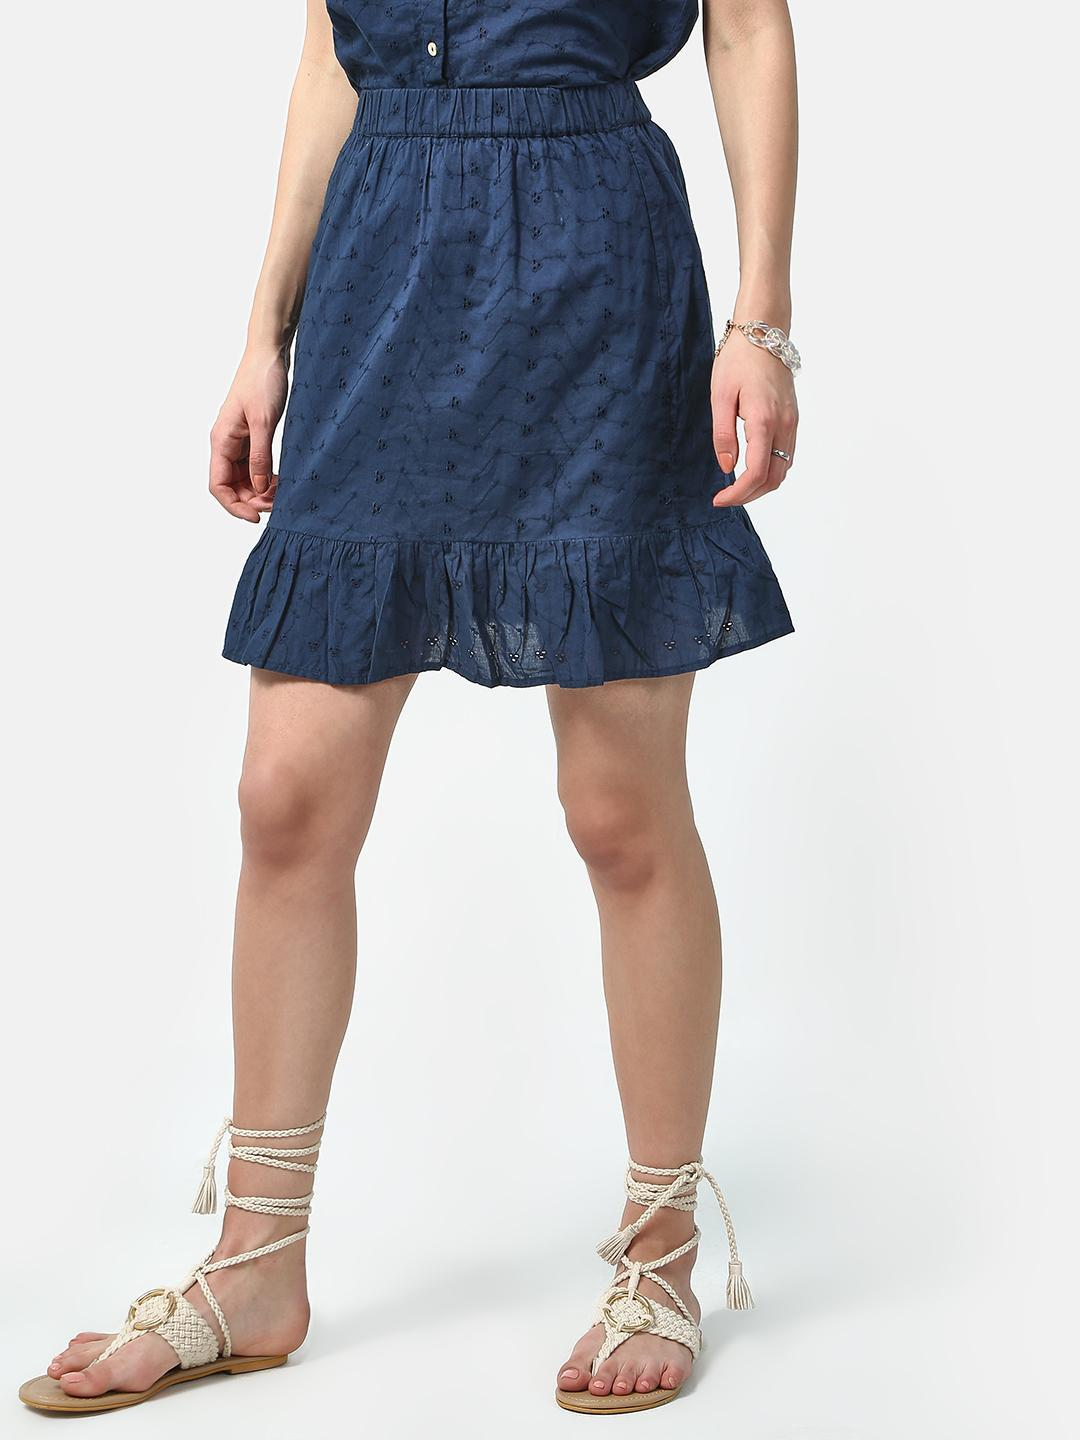 Oxolloxo Navy Friction Dotted Casual Mini Skirts 1